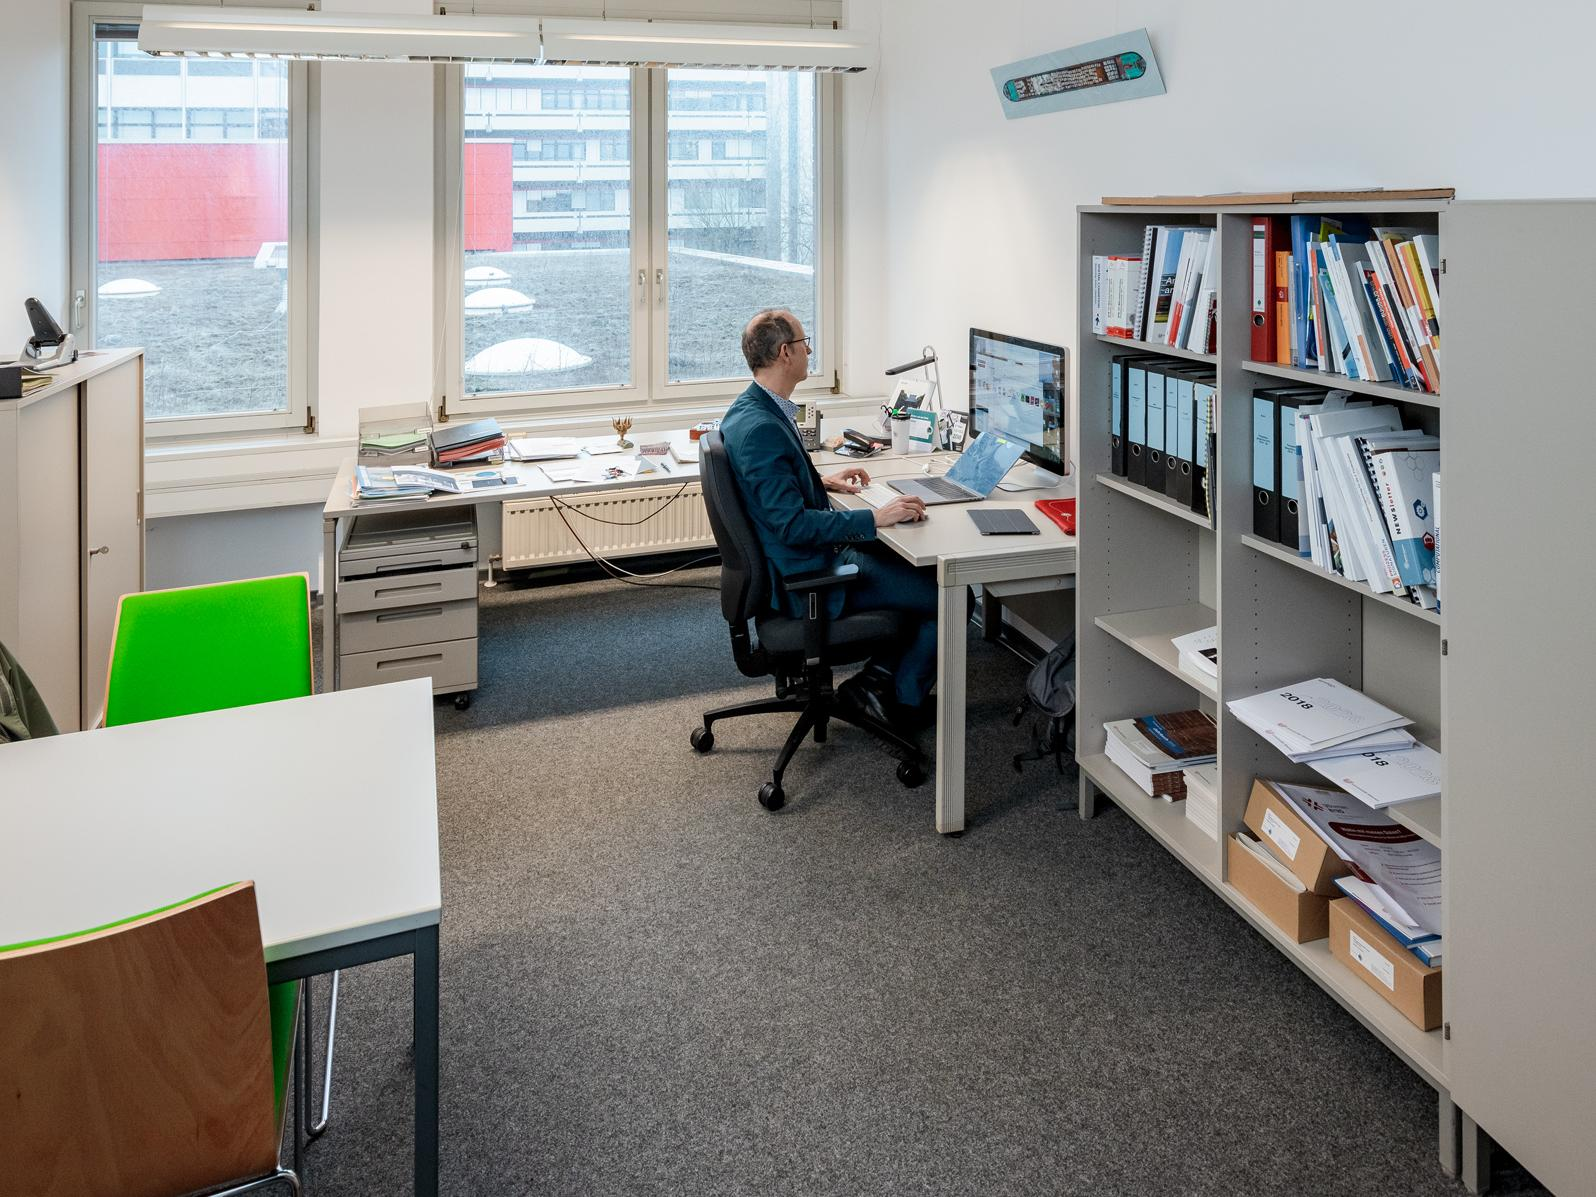 Professor Andreas Breiter in his office.